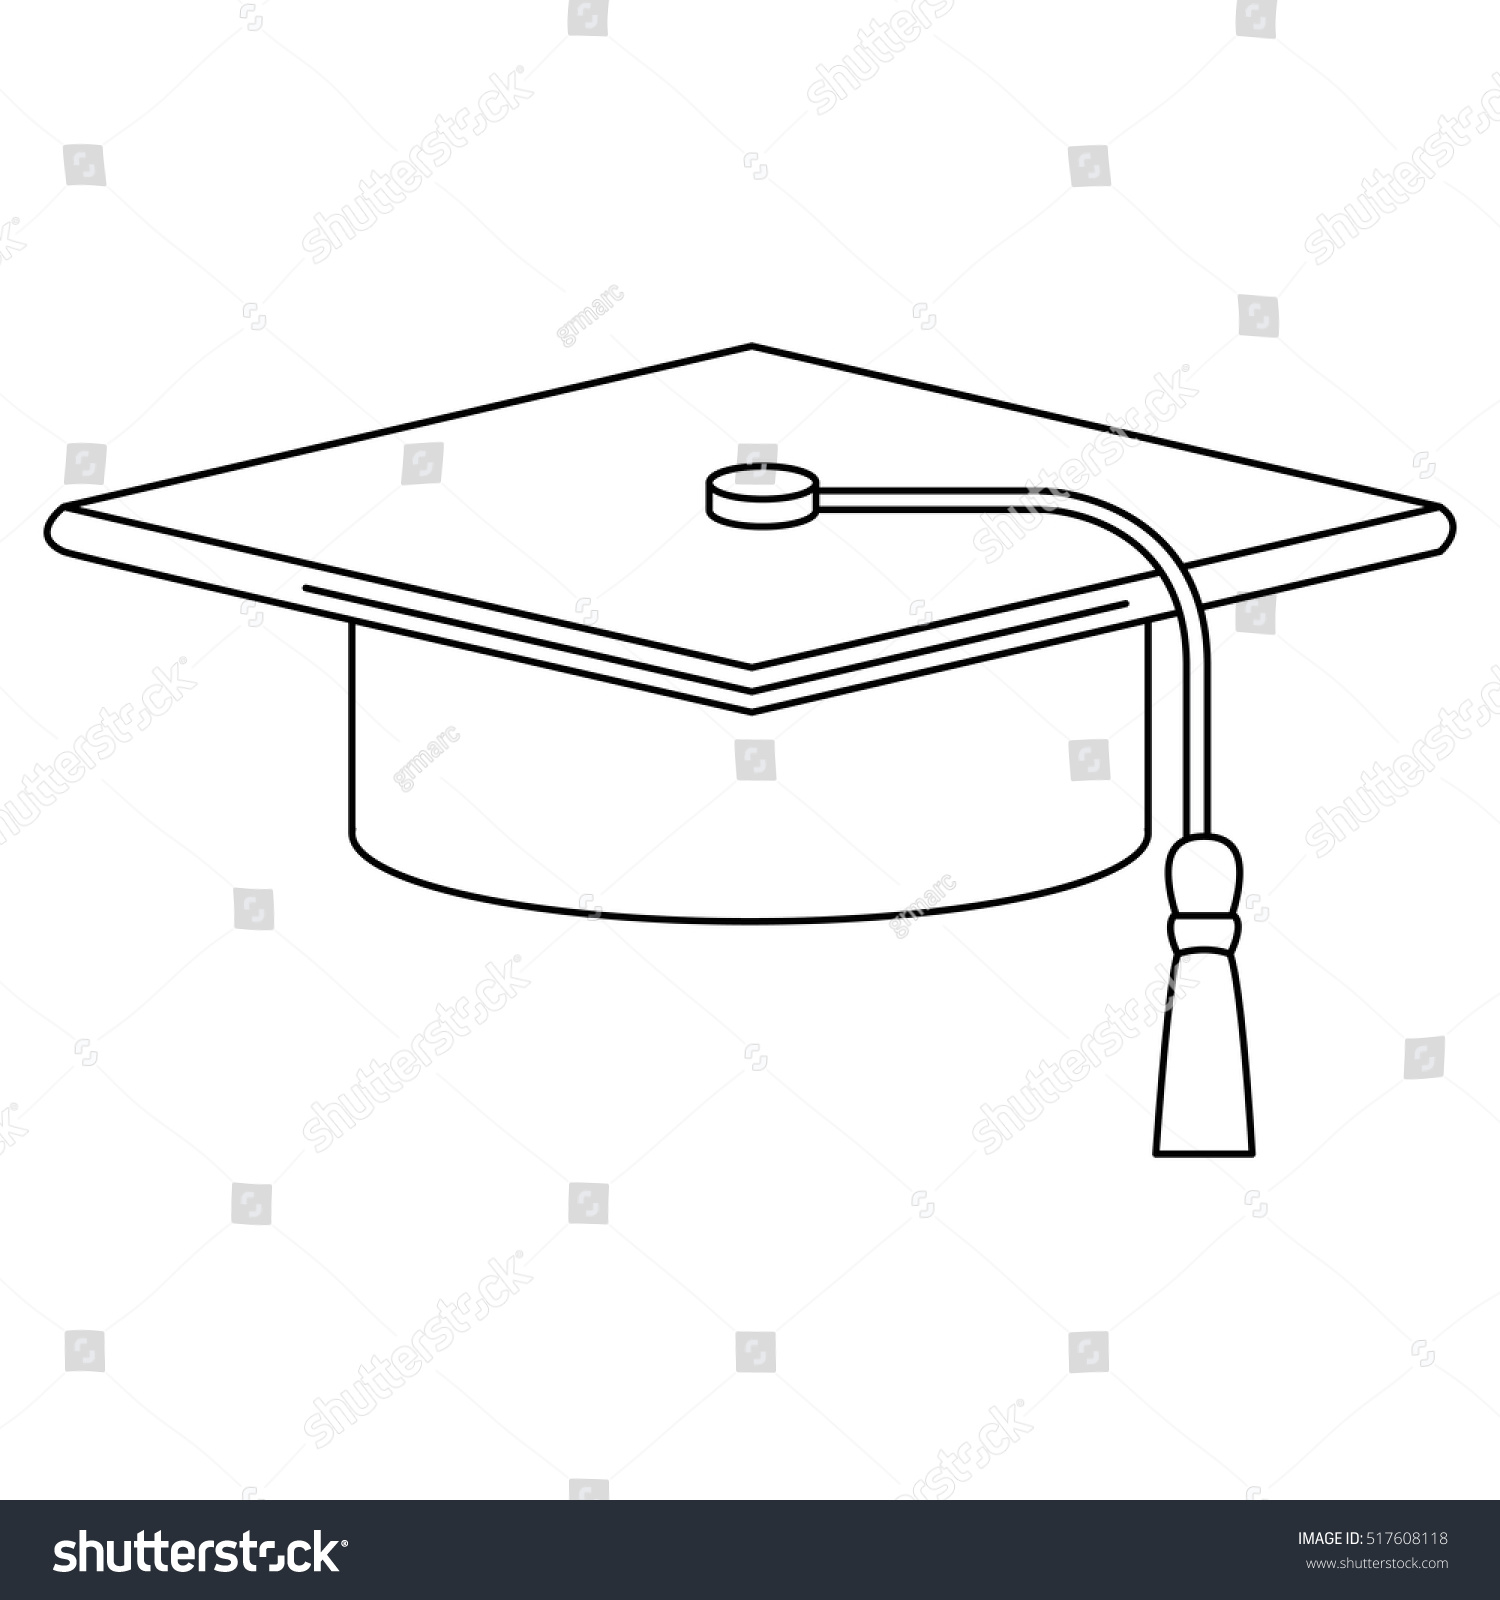 Isolated graduation cap of School concept